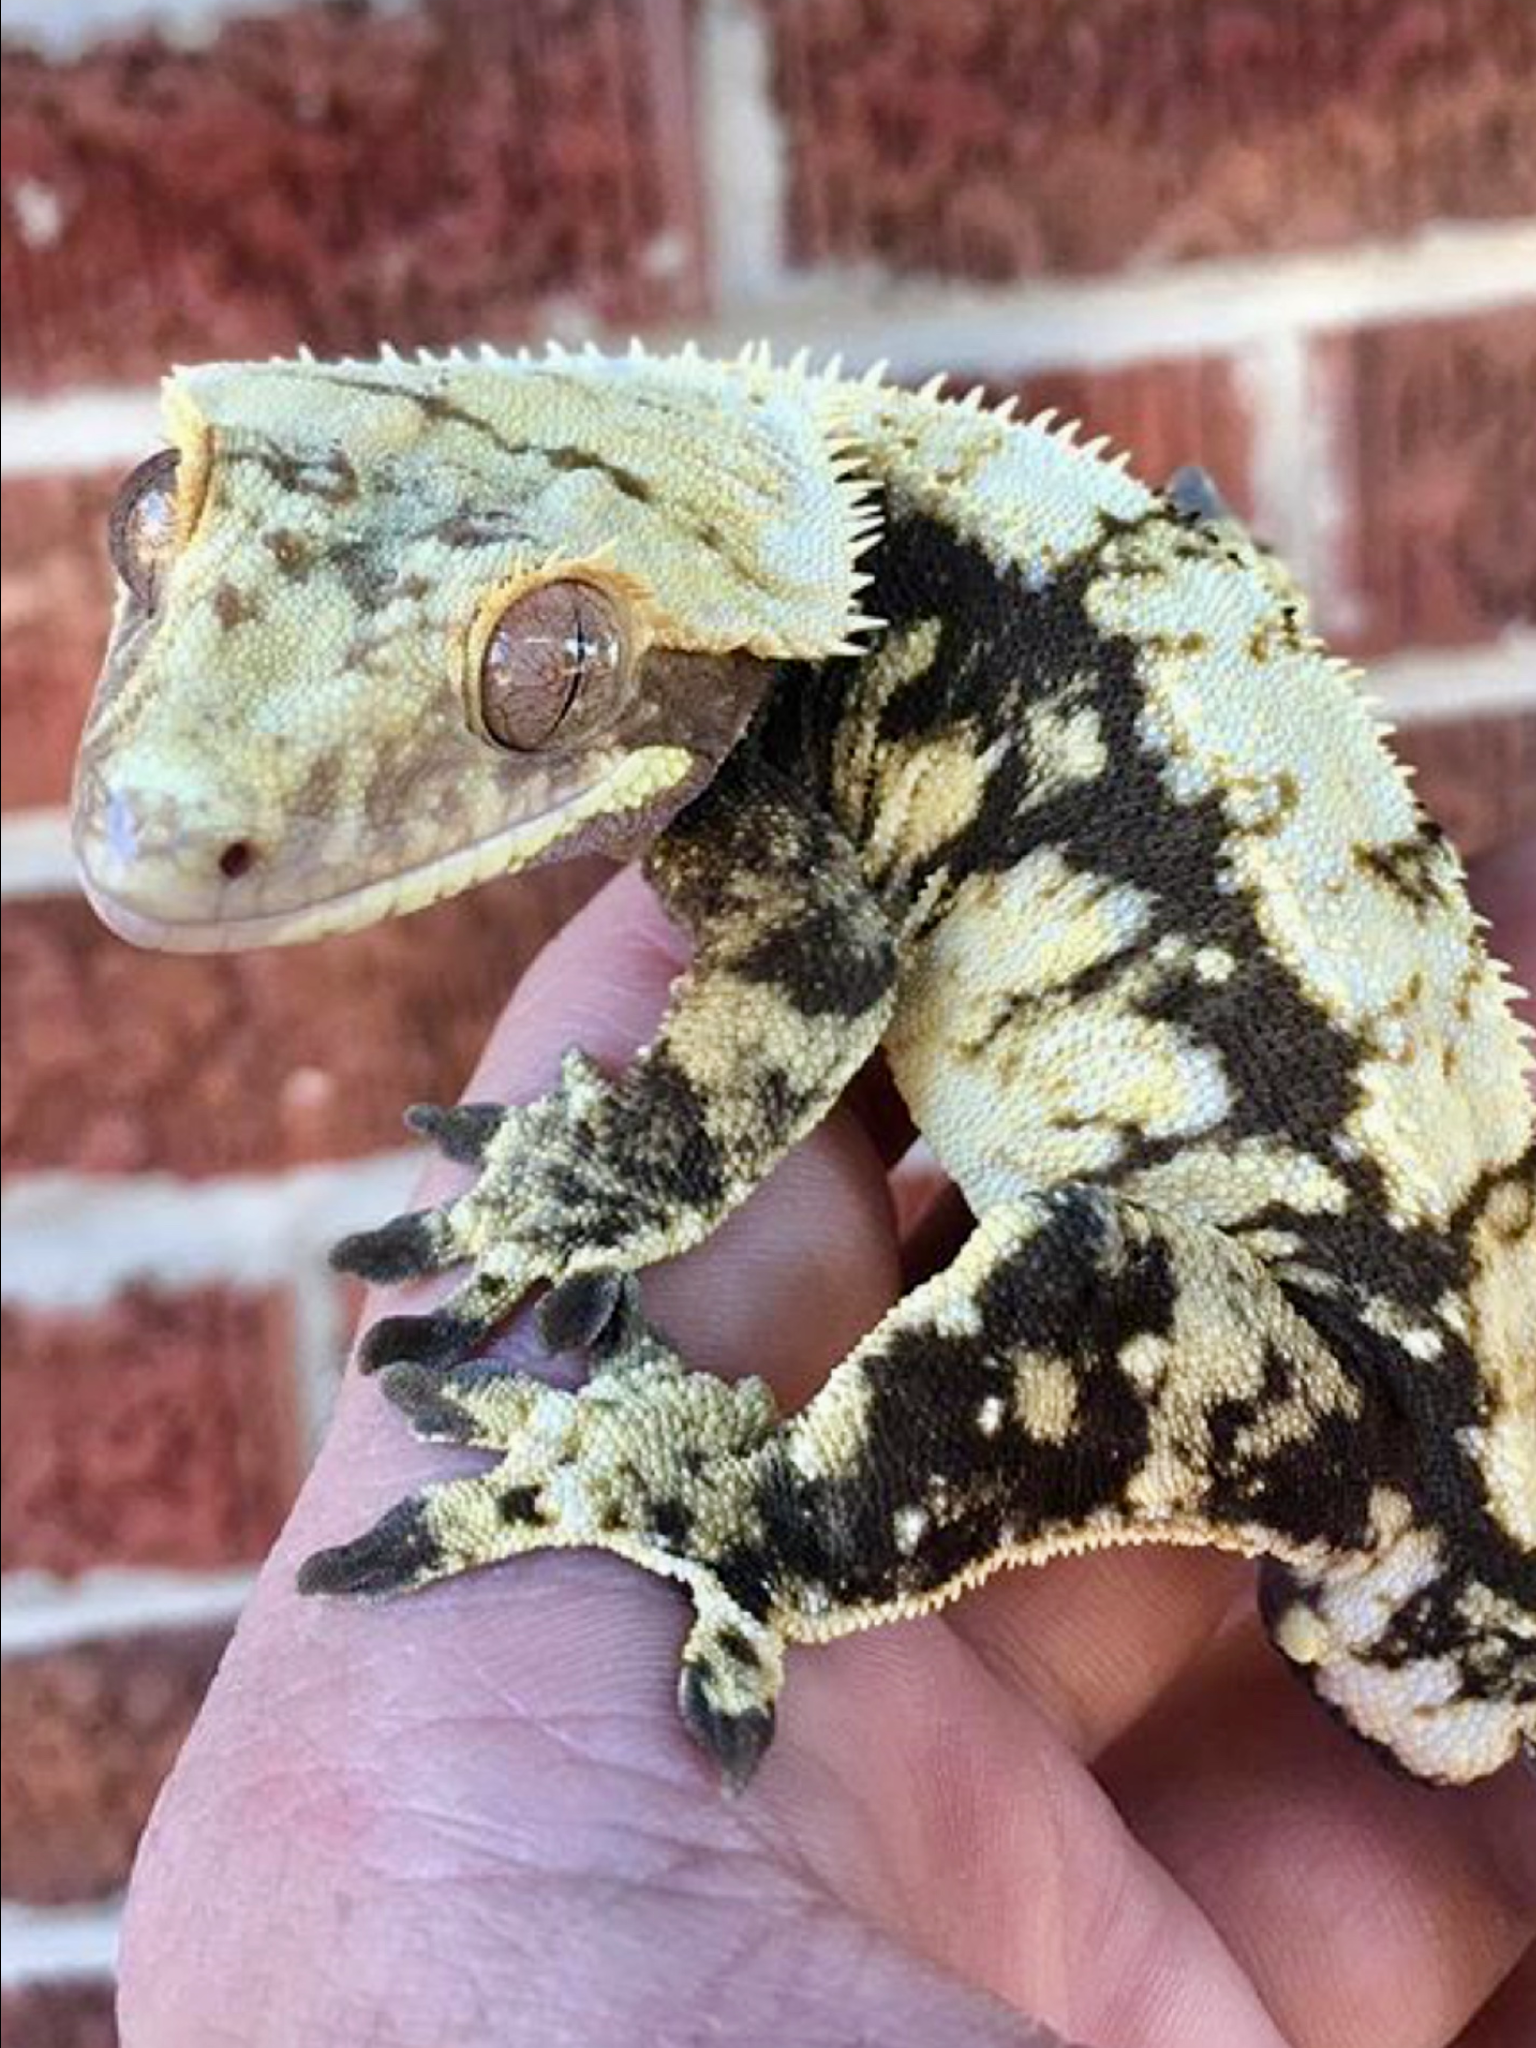 Pin by Knoxx on Scaley Mom Cute reptiles, Reptiles pet